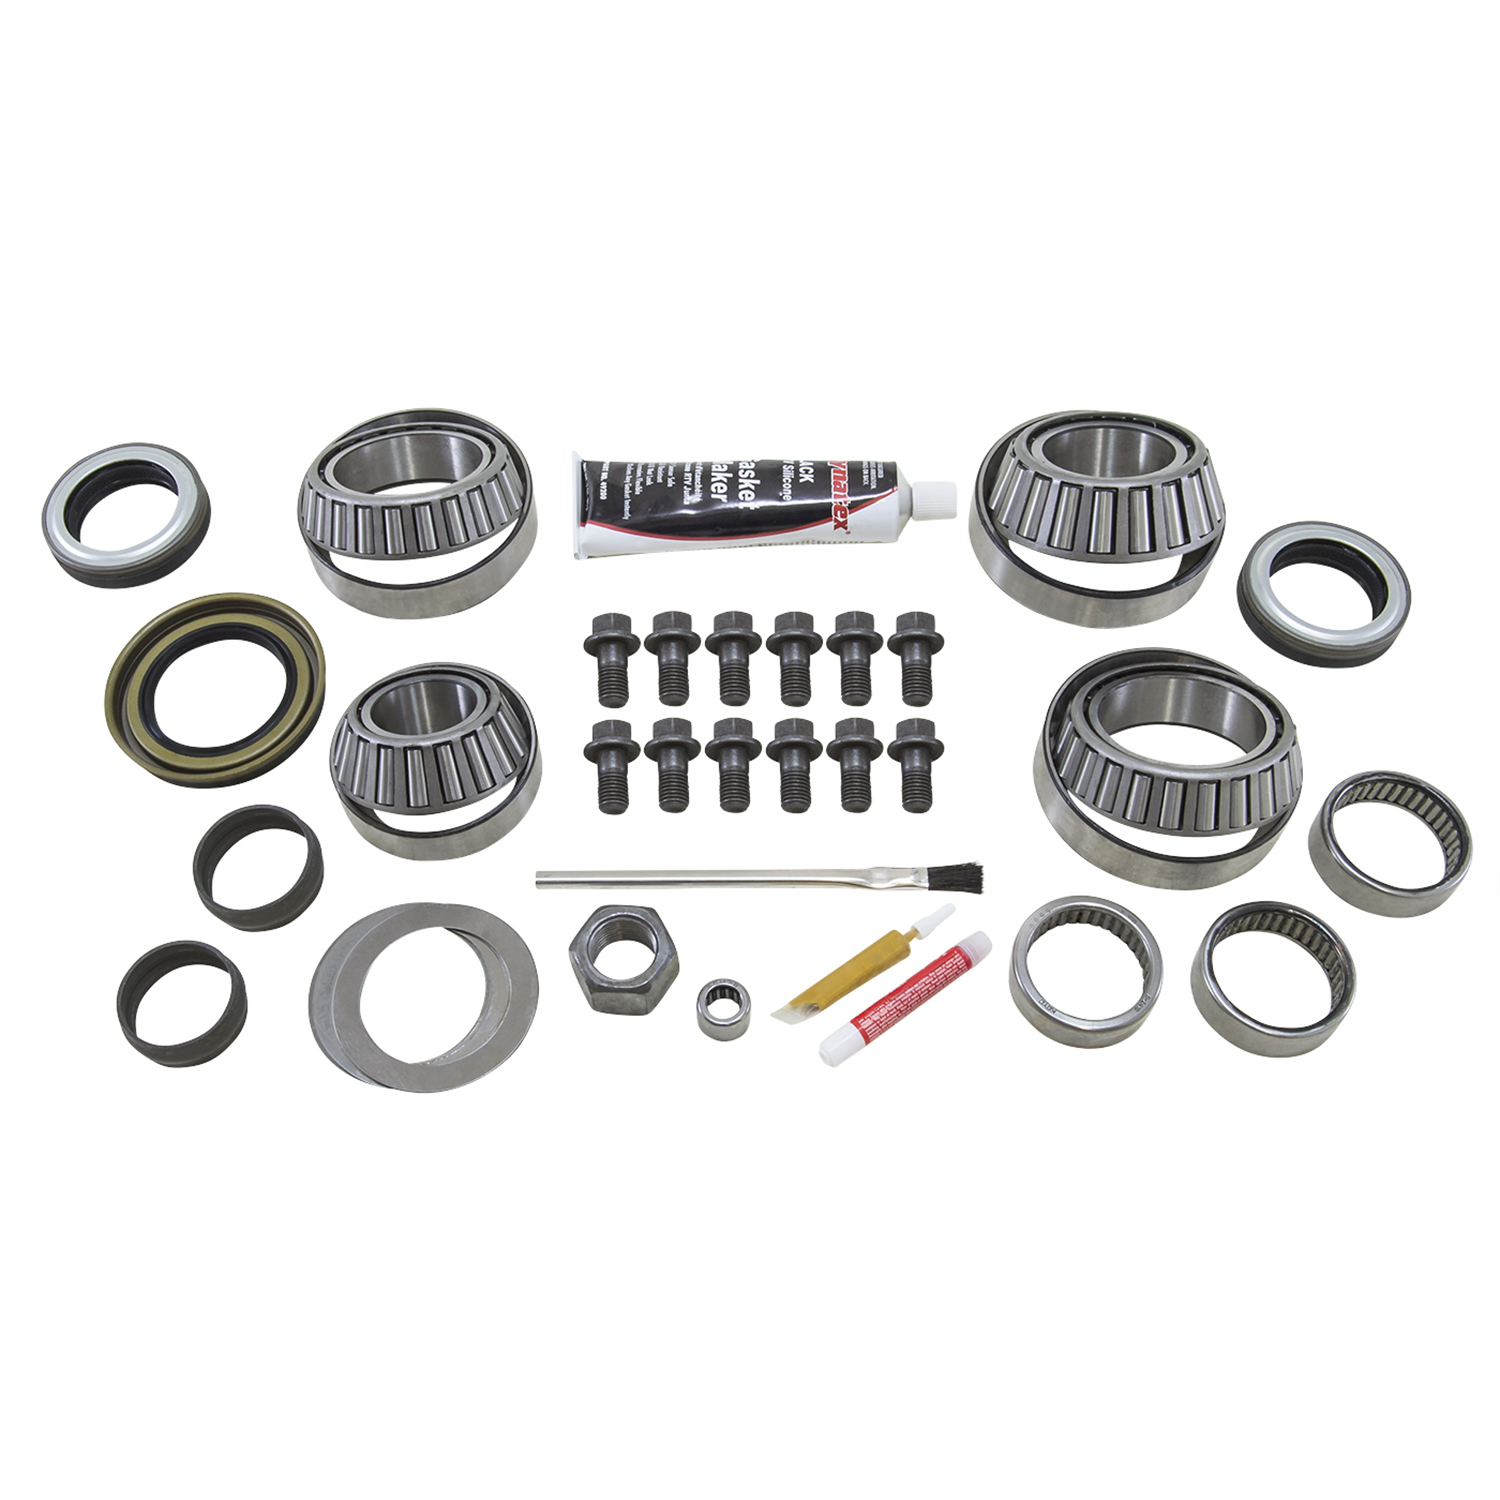 YK C8.0-IFS-A - Yukon Master Overhaul kit for Chrysler '99 and older 8